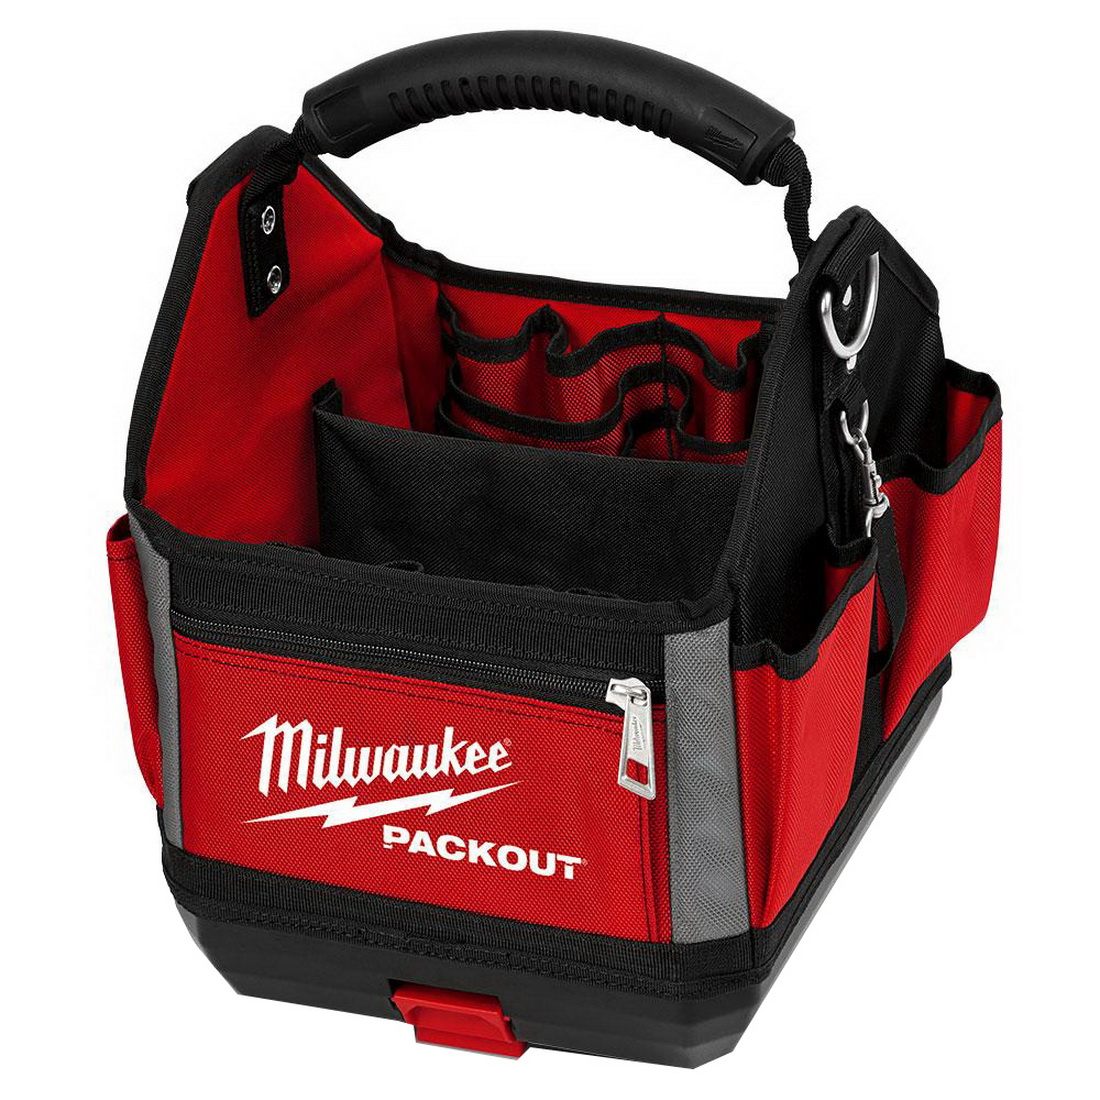 PACKOUT Jobsite Storage Tote